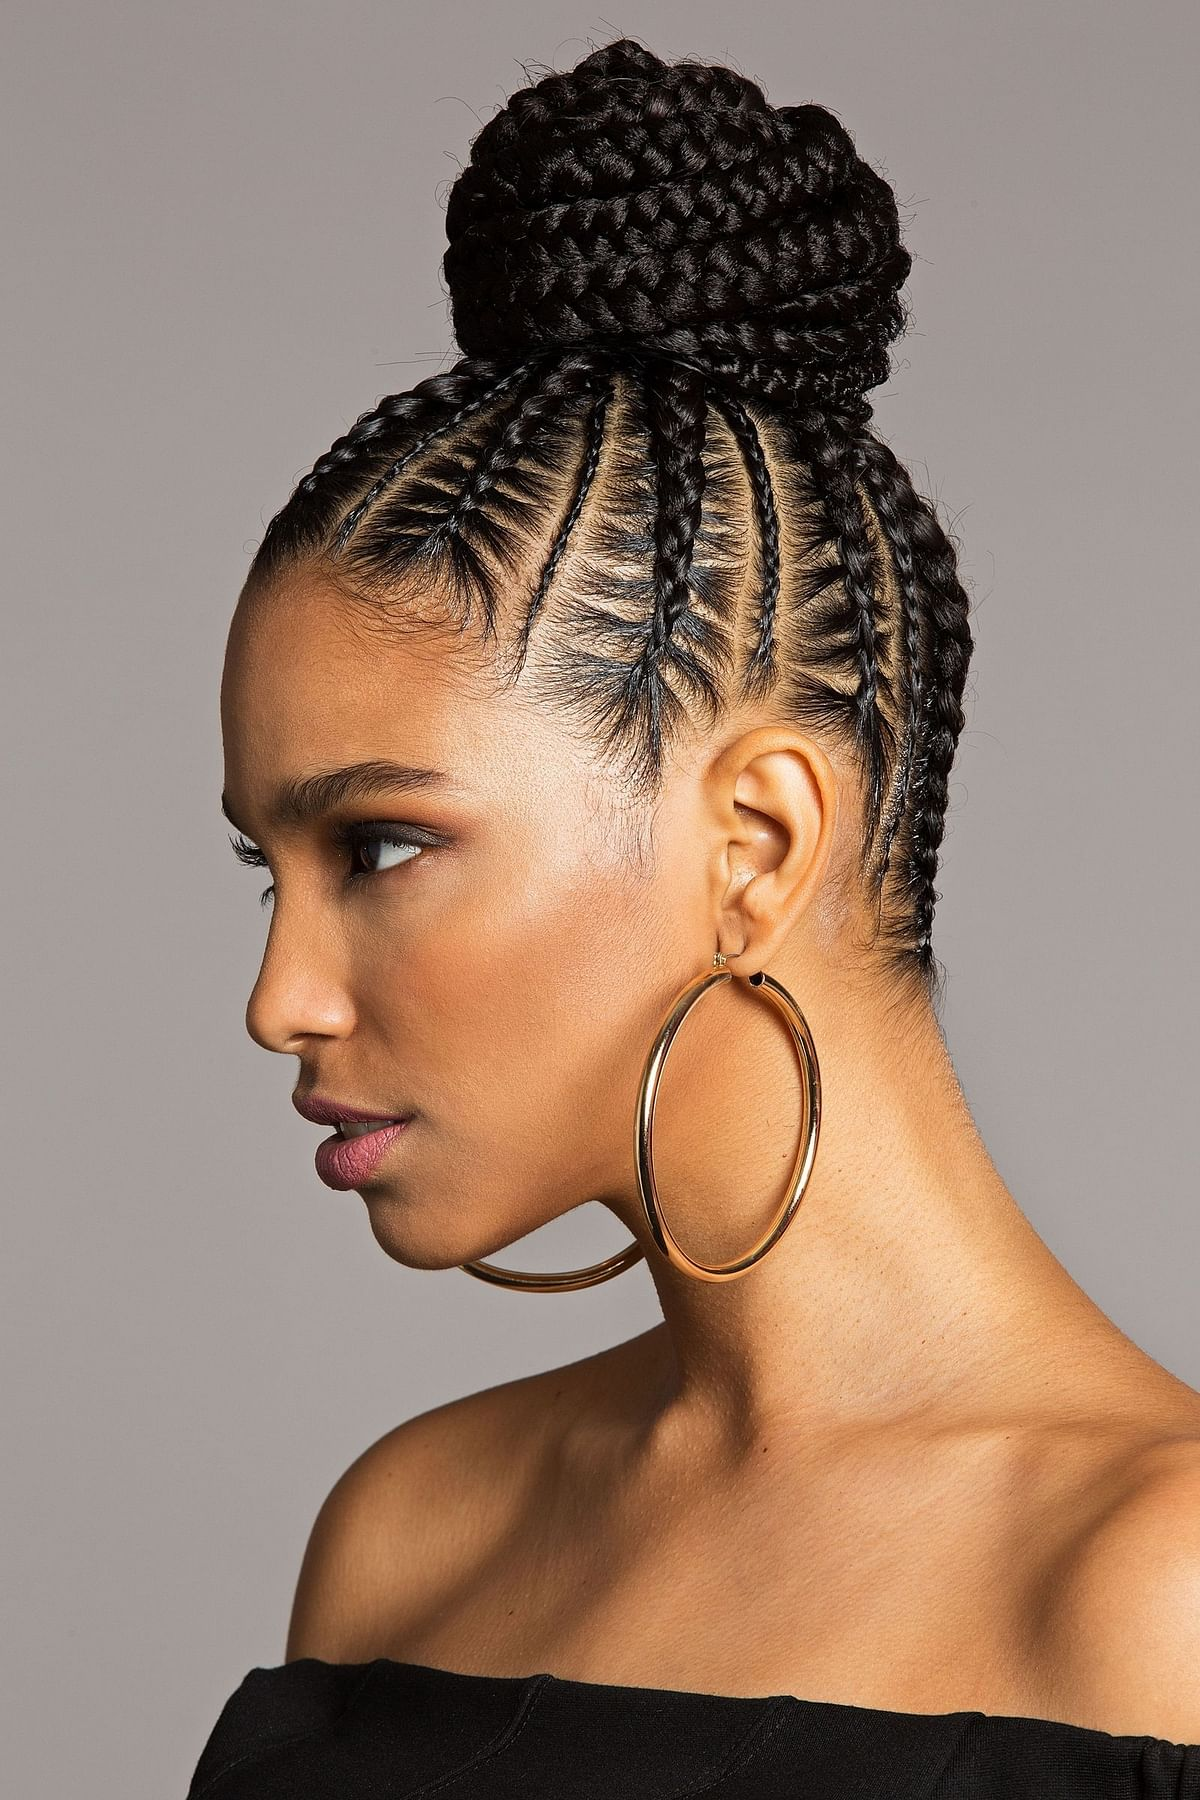 Ladies! Here Are 9 Head Turning Summer Hairstyles You Should Try